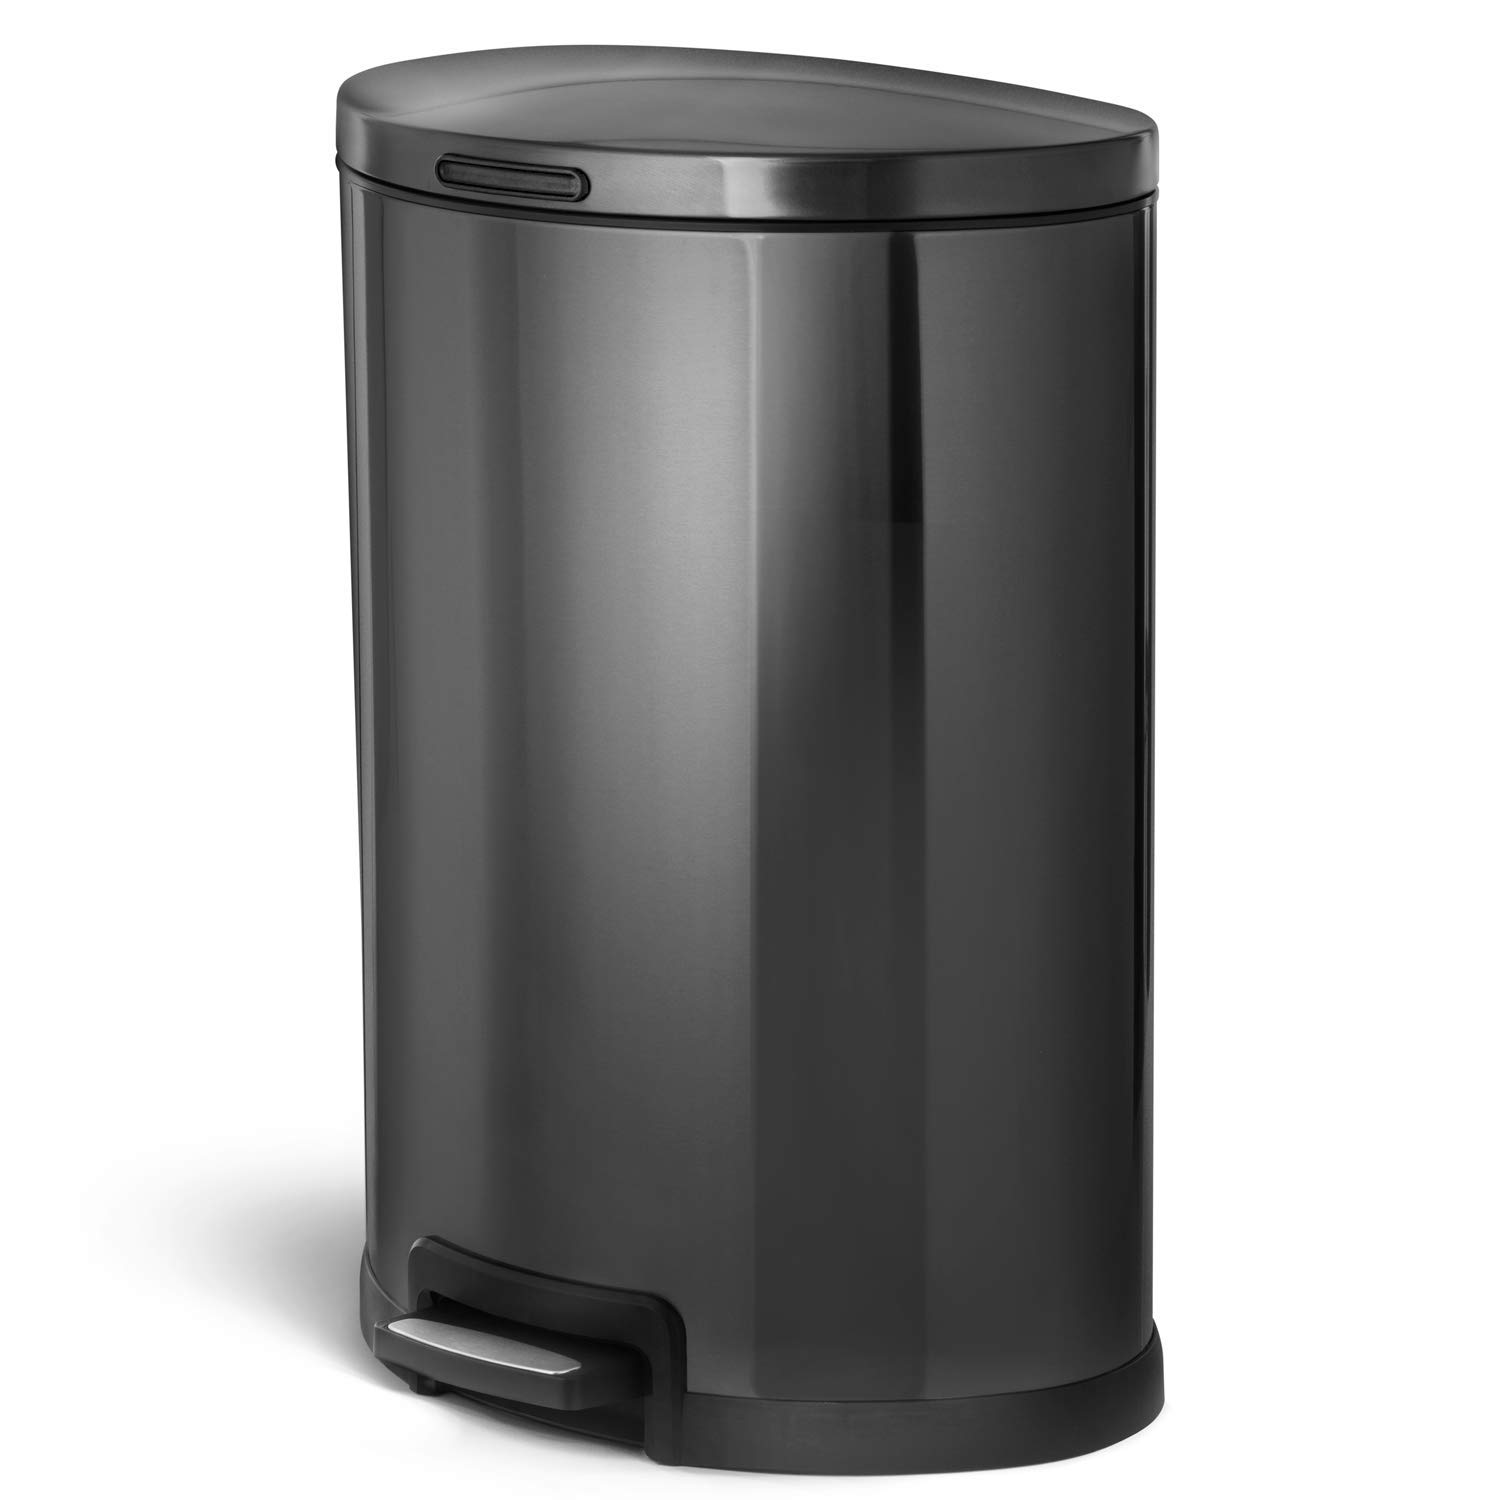 Home Zone Living VA41835A 45 Liter / 12 Gallon Stainless Steel Trash Can, Semi-Round, Pedal (Black),